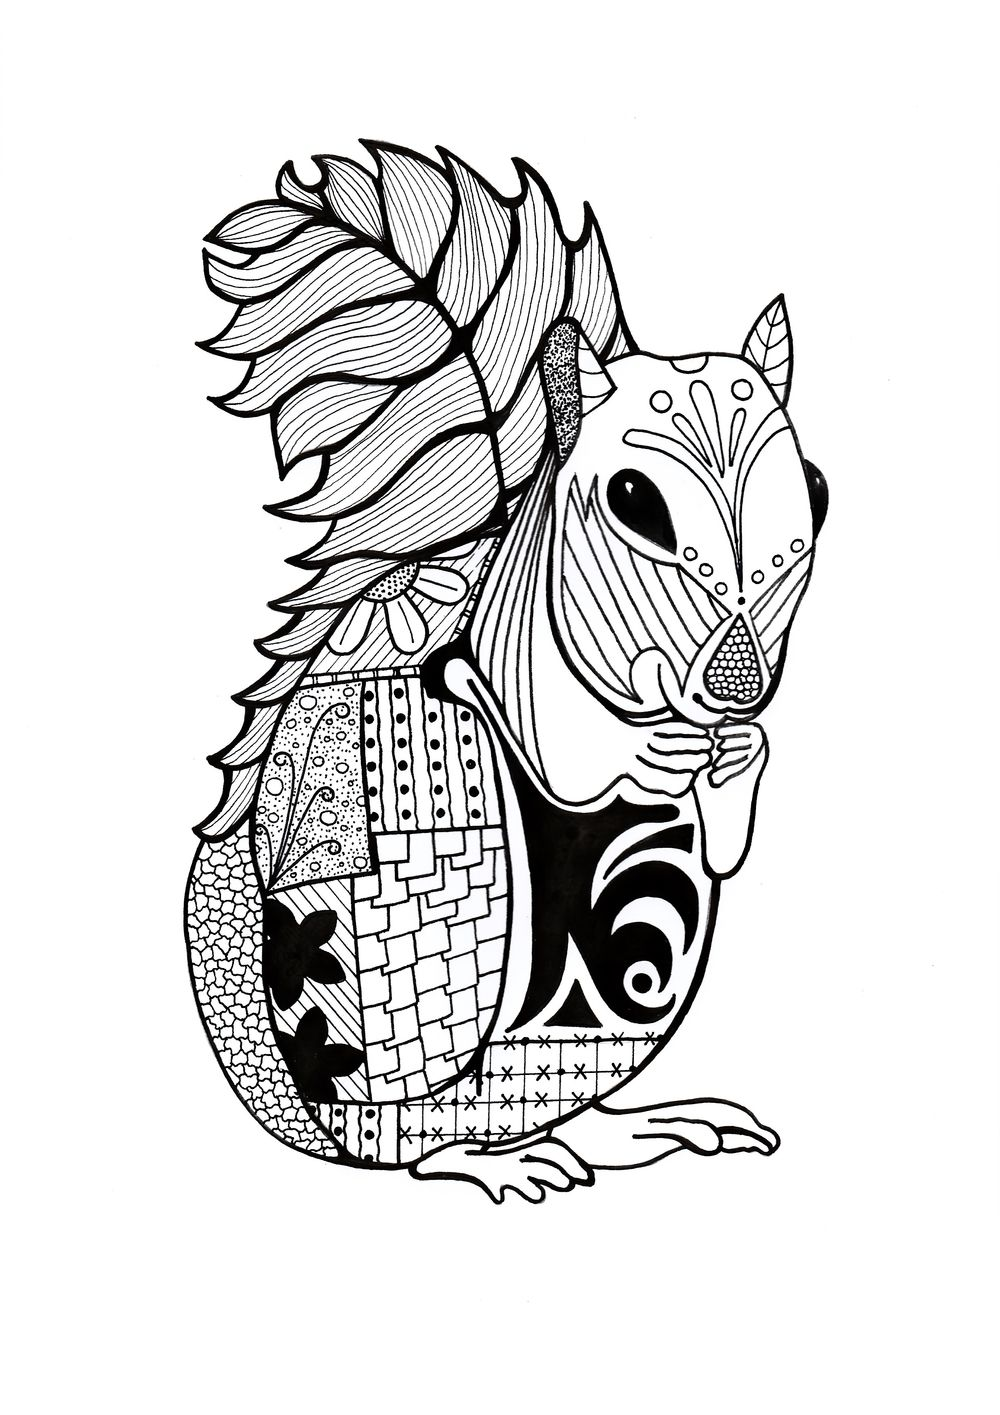 small coloring pages for adults - photo#33